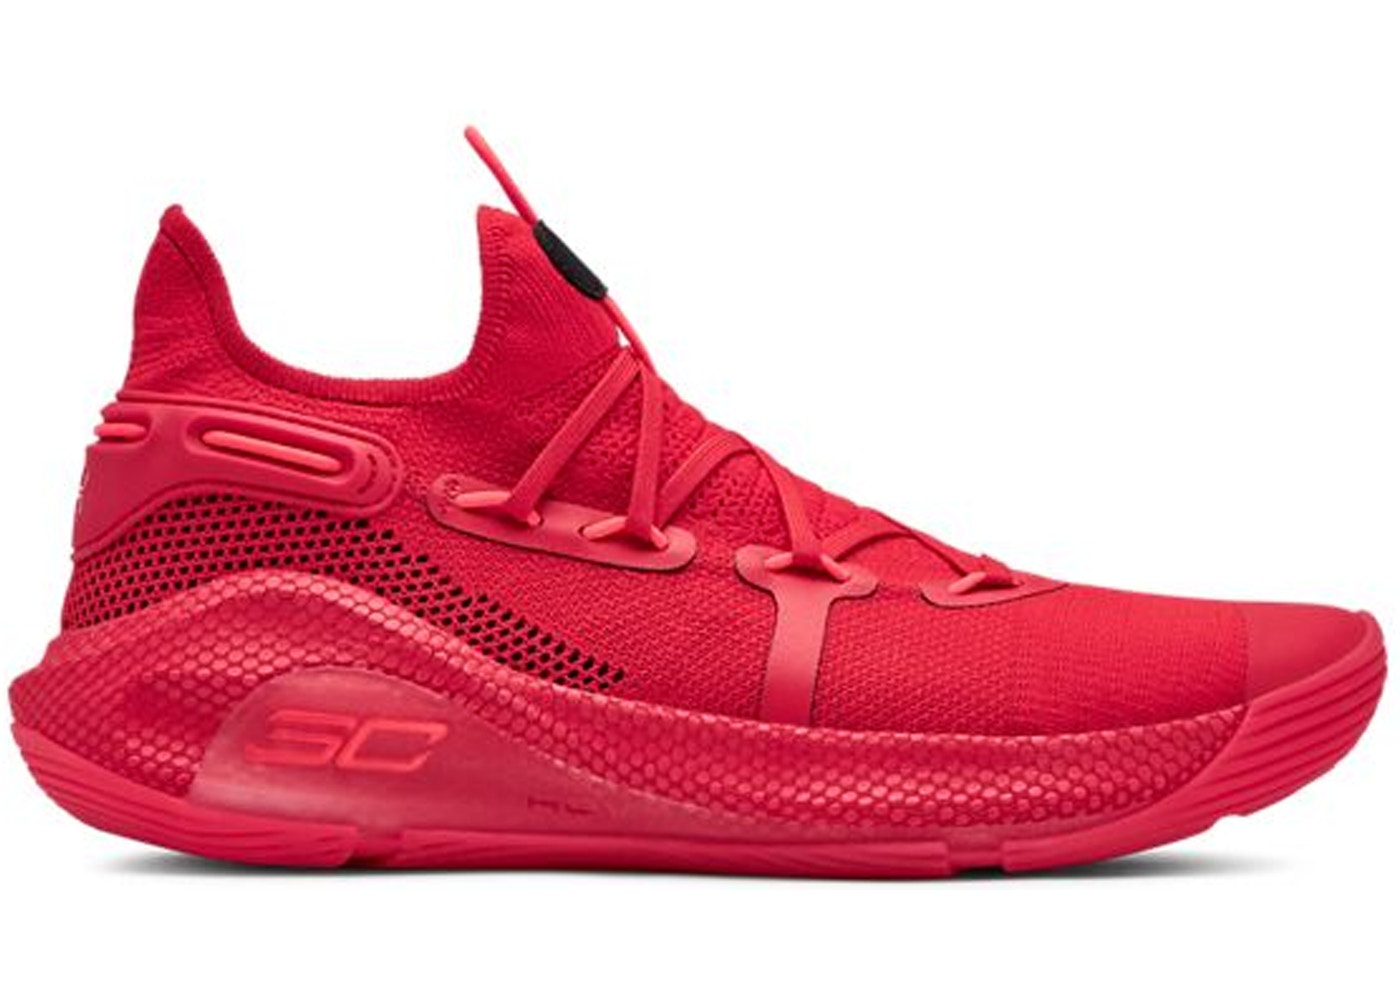 19351e6eed47 Under Armour Curry 6 Red - 3020612-603